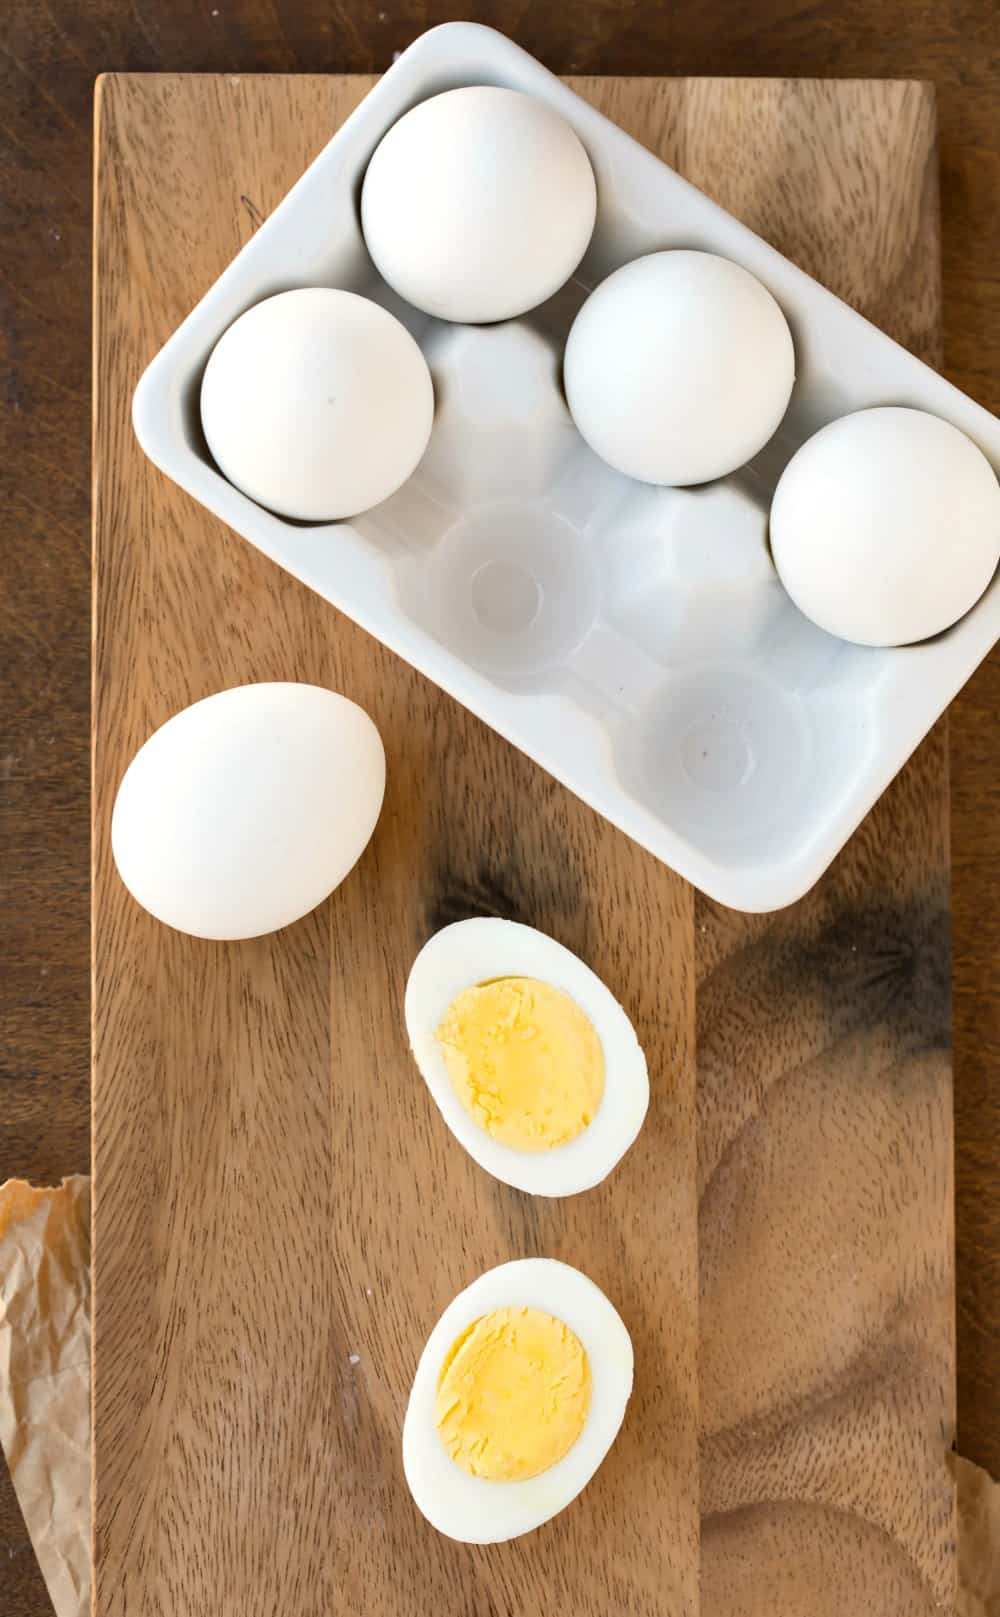 Hard boiled eggs on a wooden cutting board